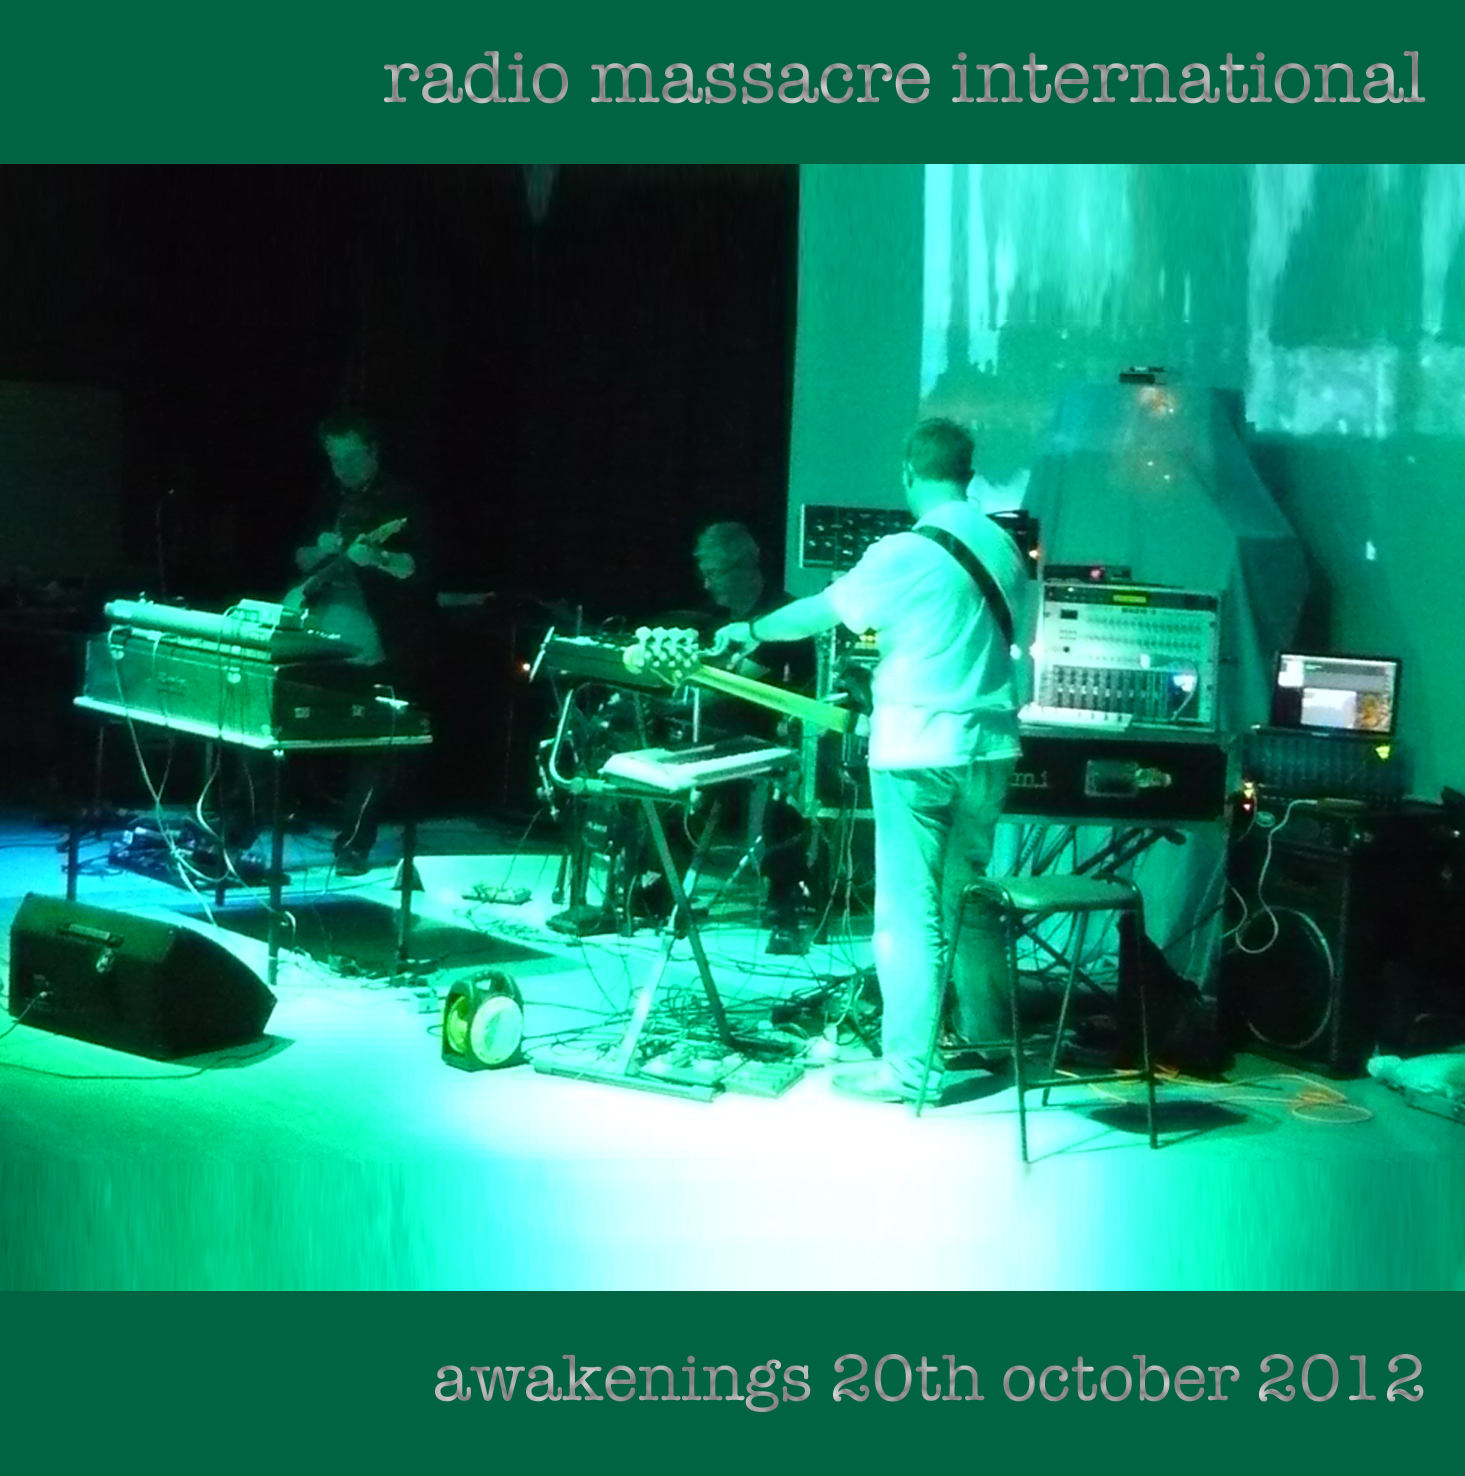 awakenings 20th october 2012